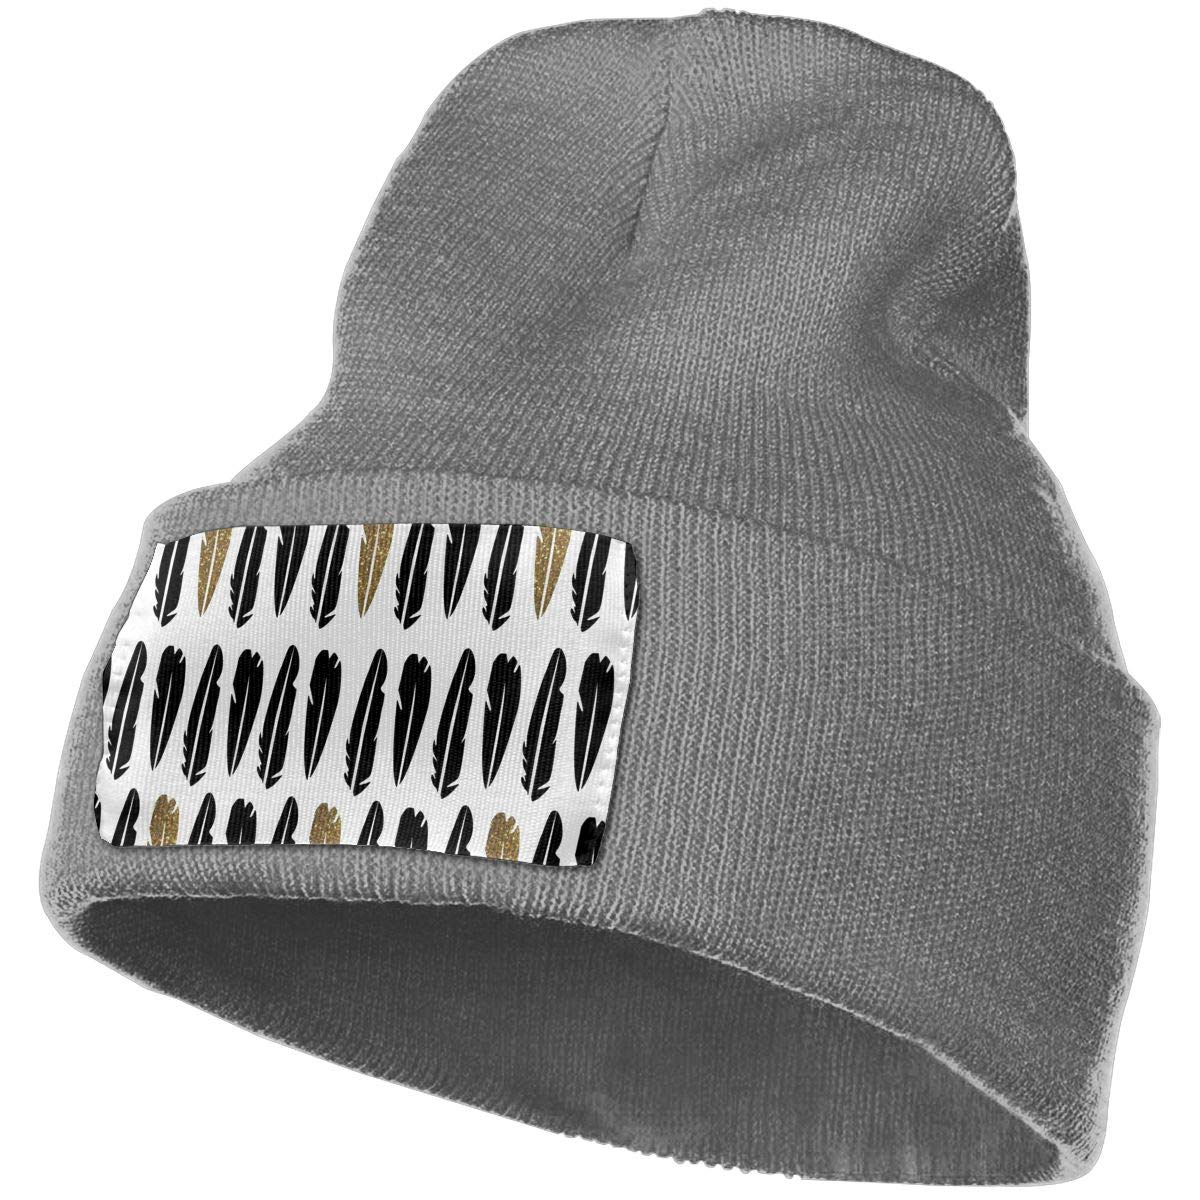 JimHappy Feather Hat for Men and Women Winter Warm Hats Knit Slouchy Thick Skull Cap Black